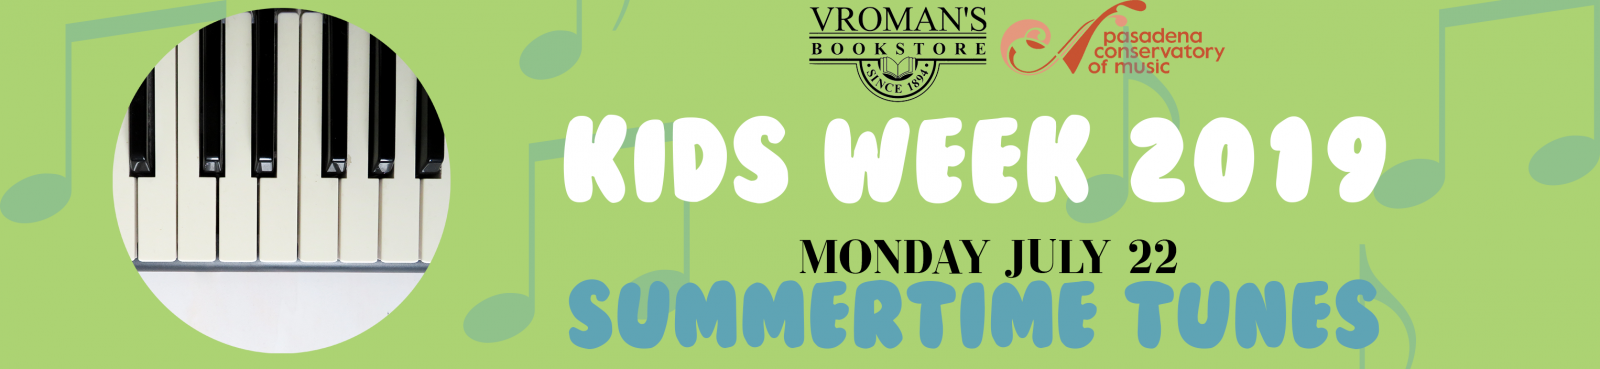 Kids Week - Music Activity Sunday July 22 at 11am